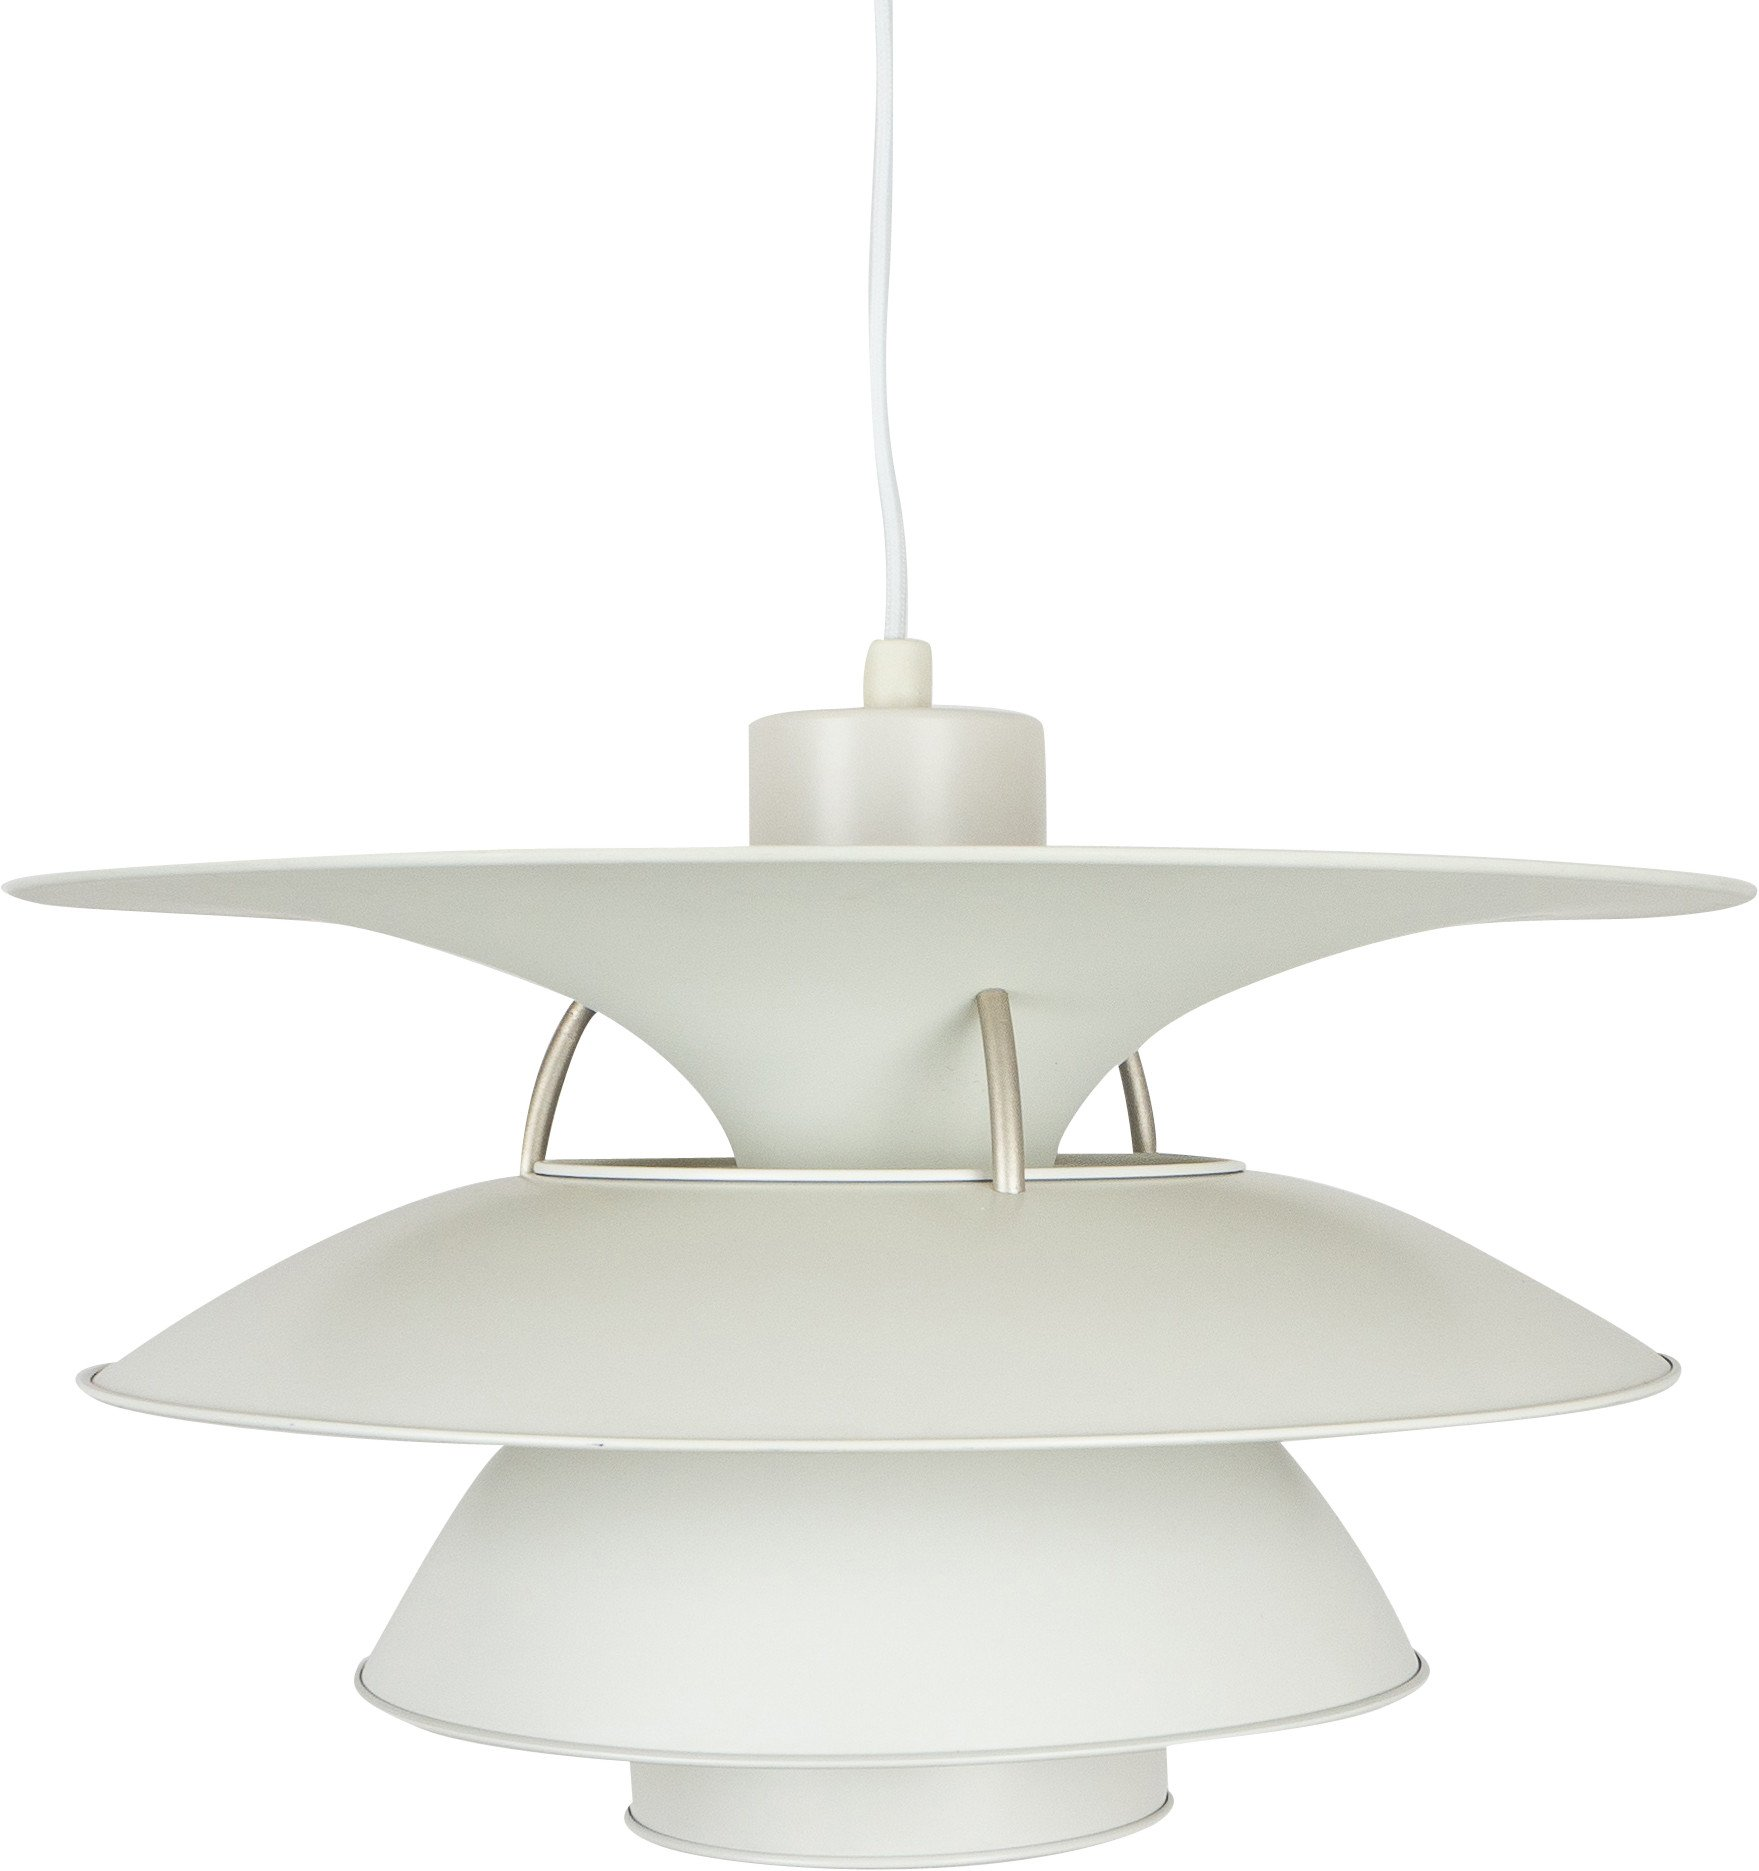 Pendant Lamp by P. Henningsen for Louis Poulsen, Denmark, 1930s